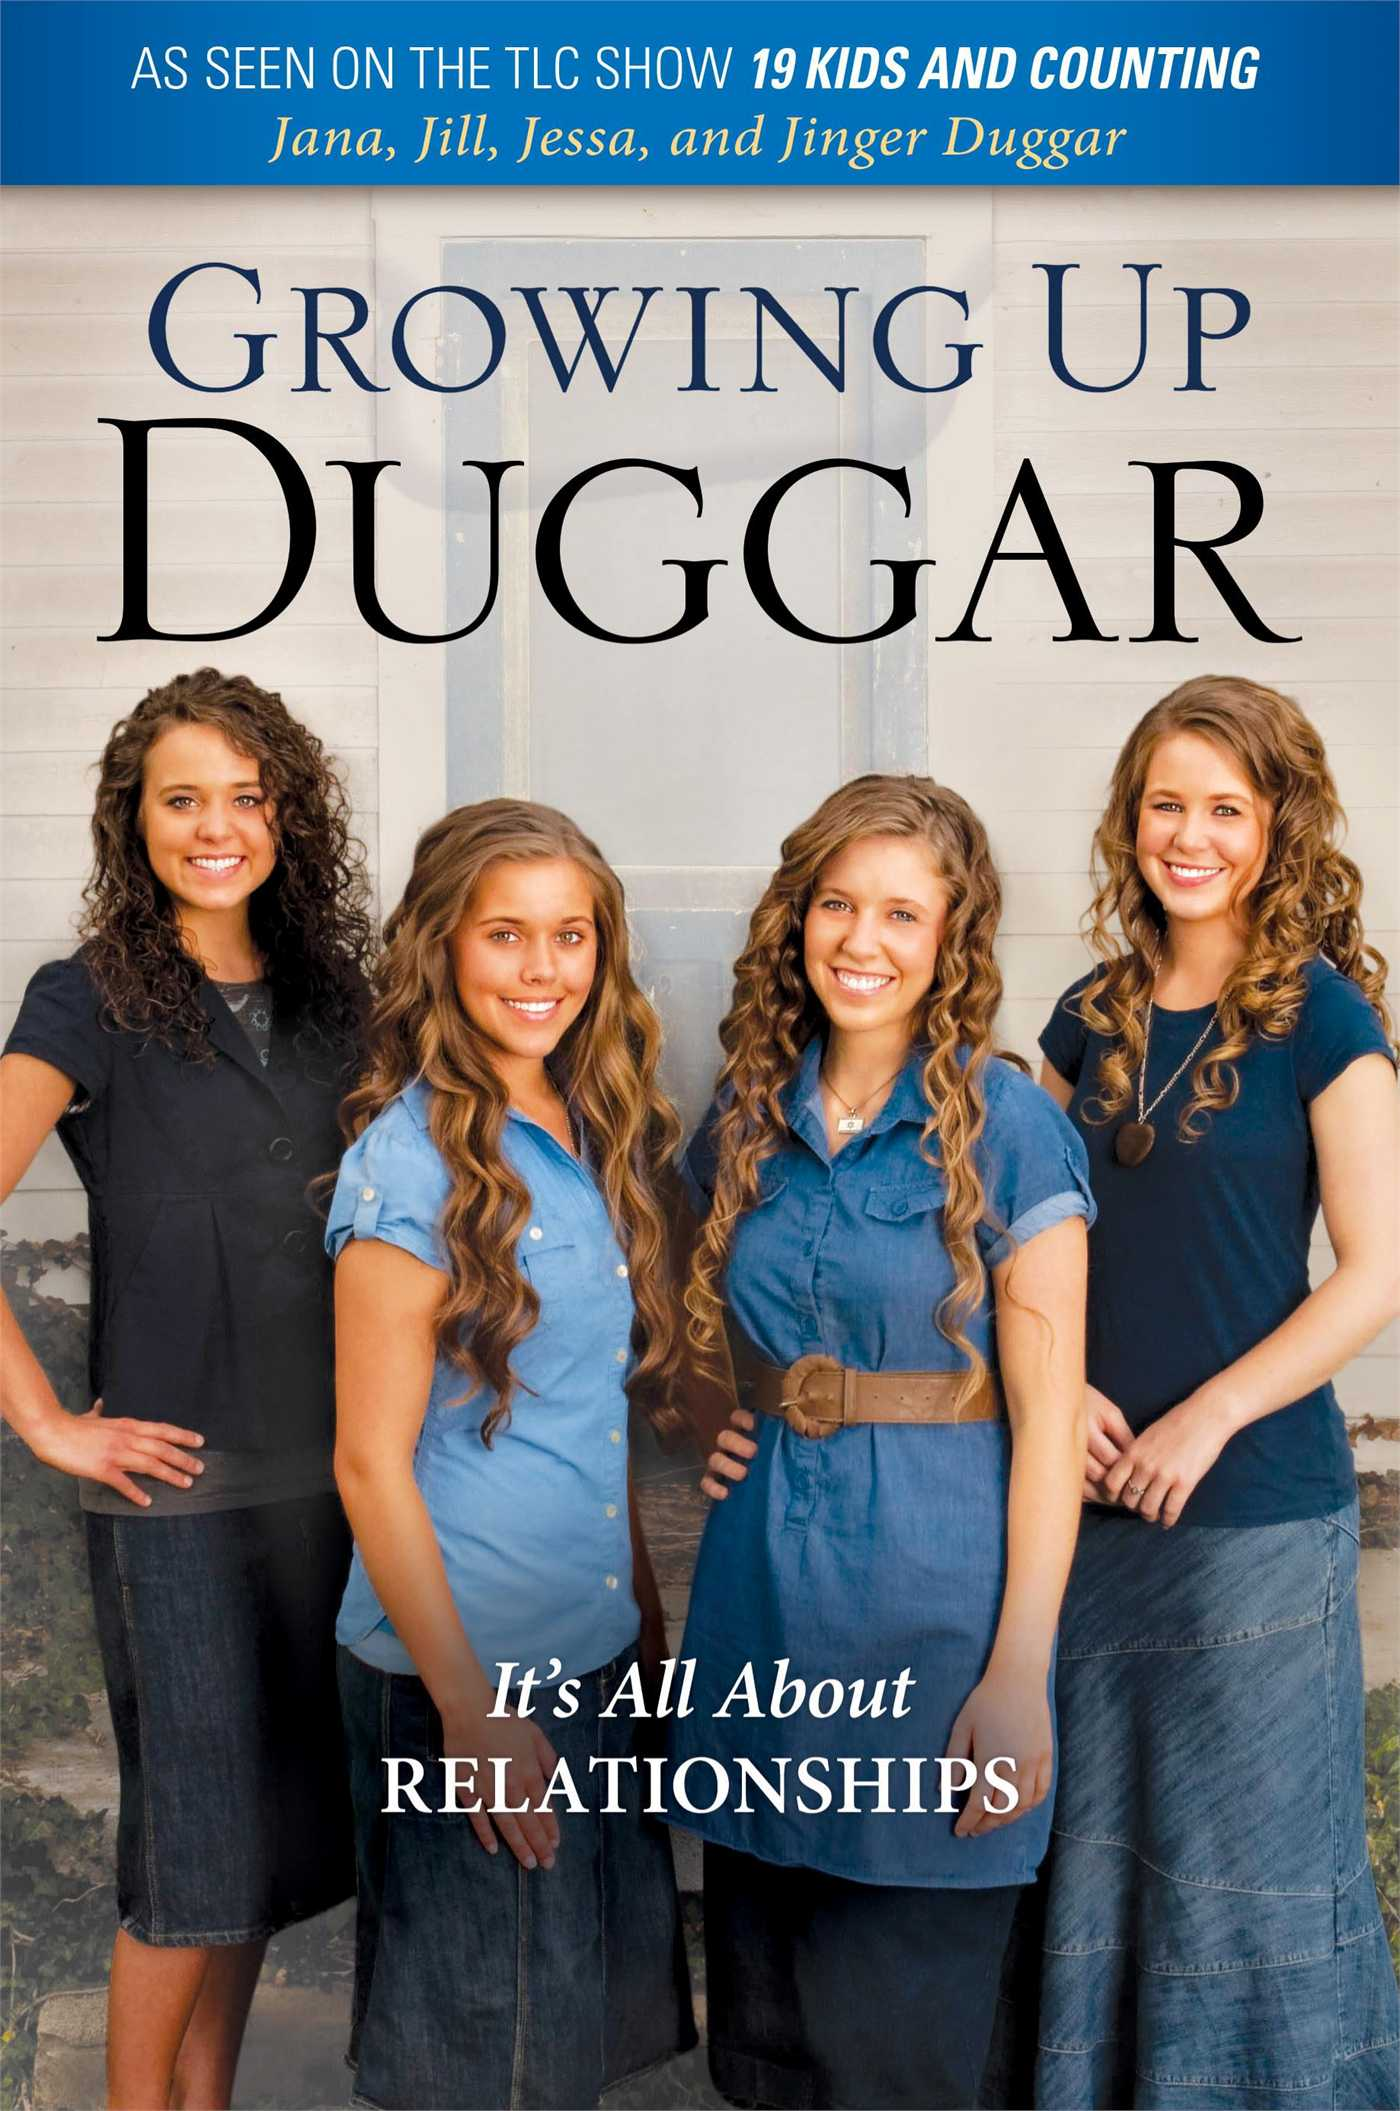 their dreams for the future, and what it's like growing up a Duggar